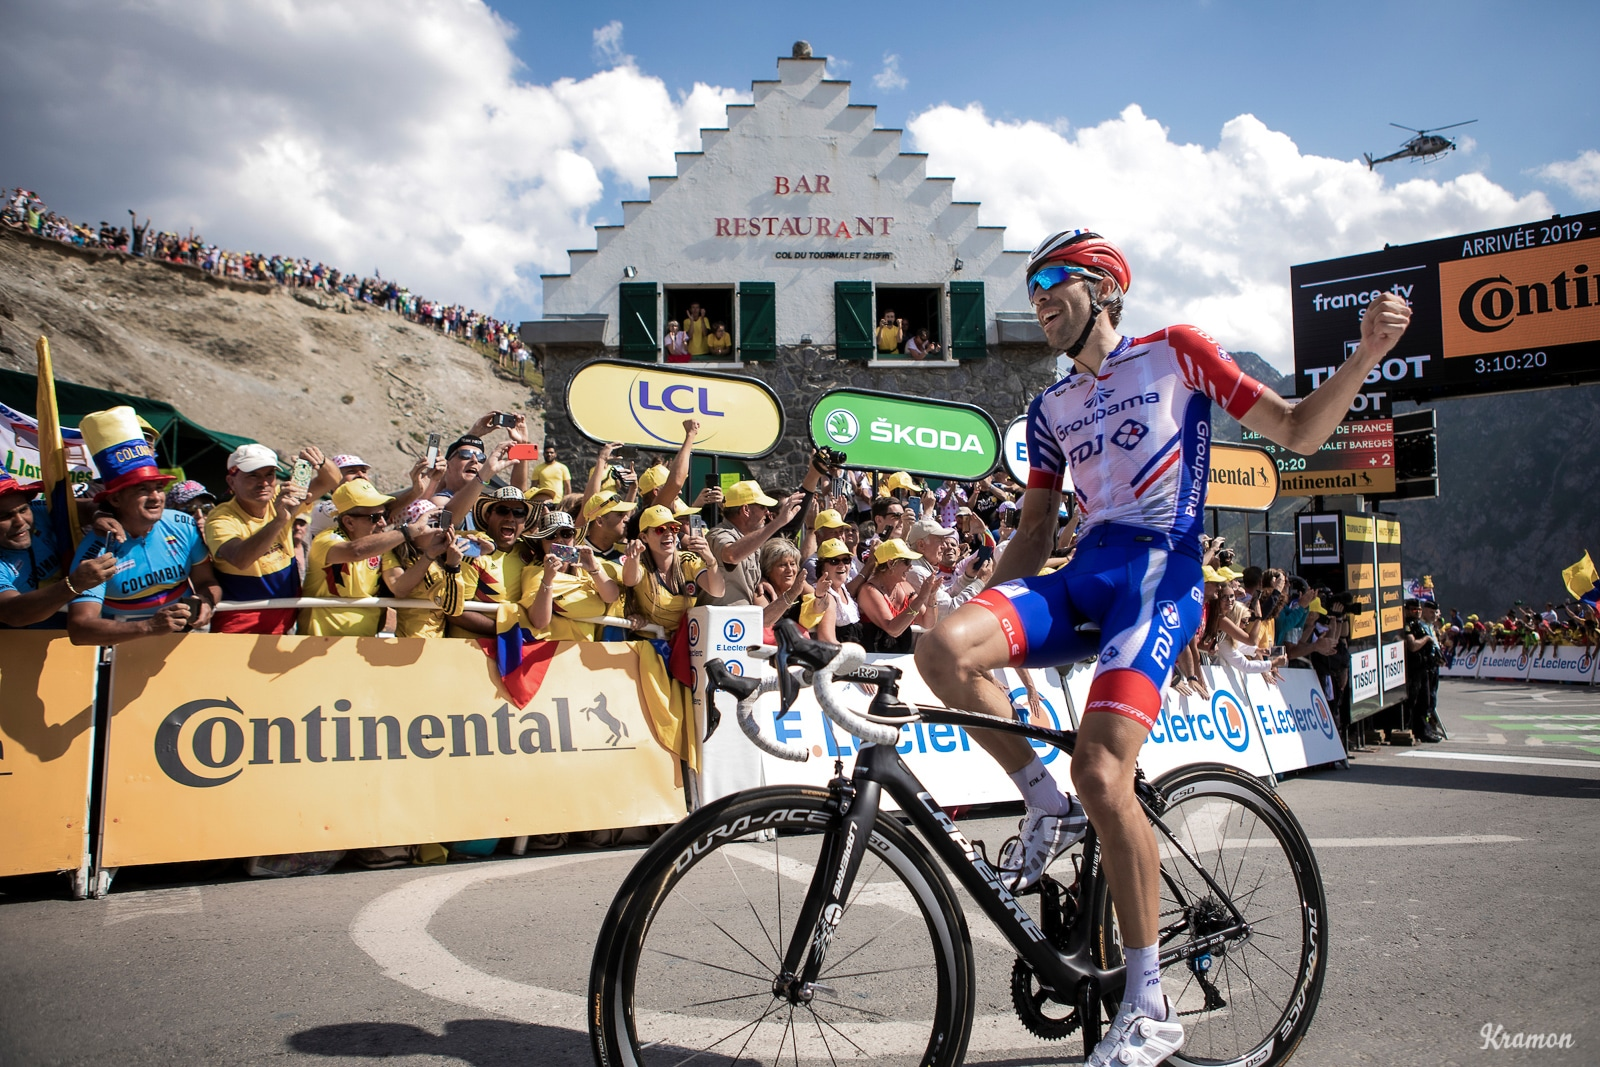 Paris nice stage 3 betting light nba betting lines today